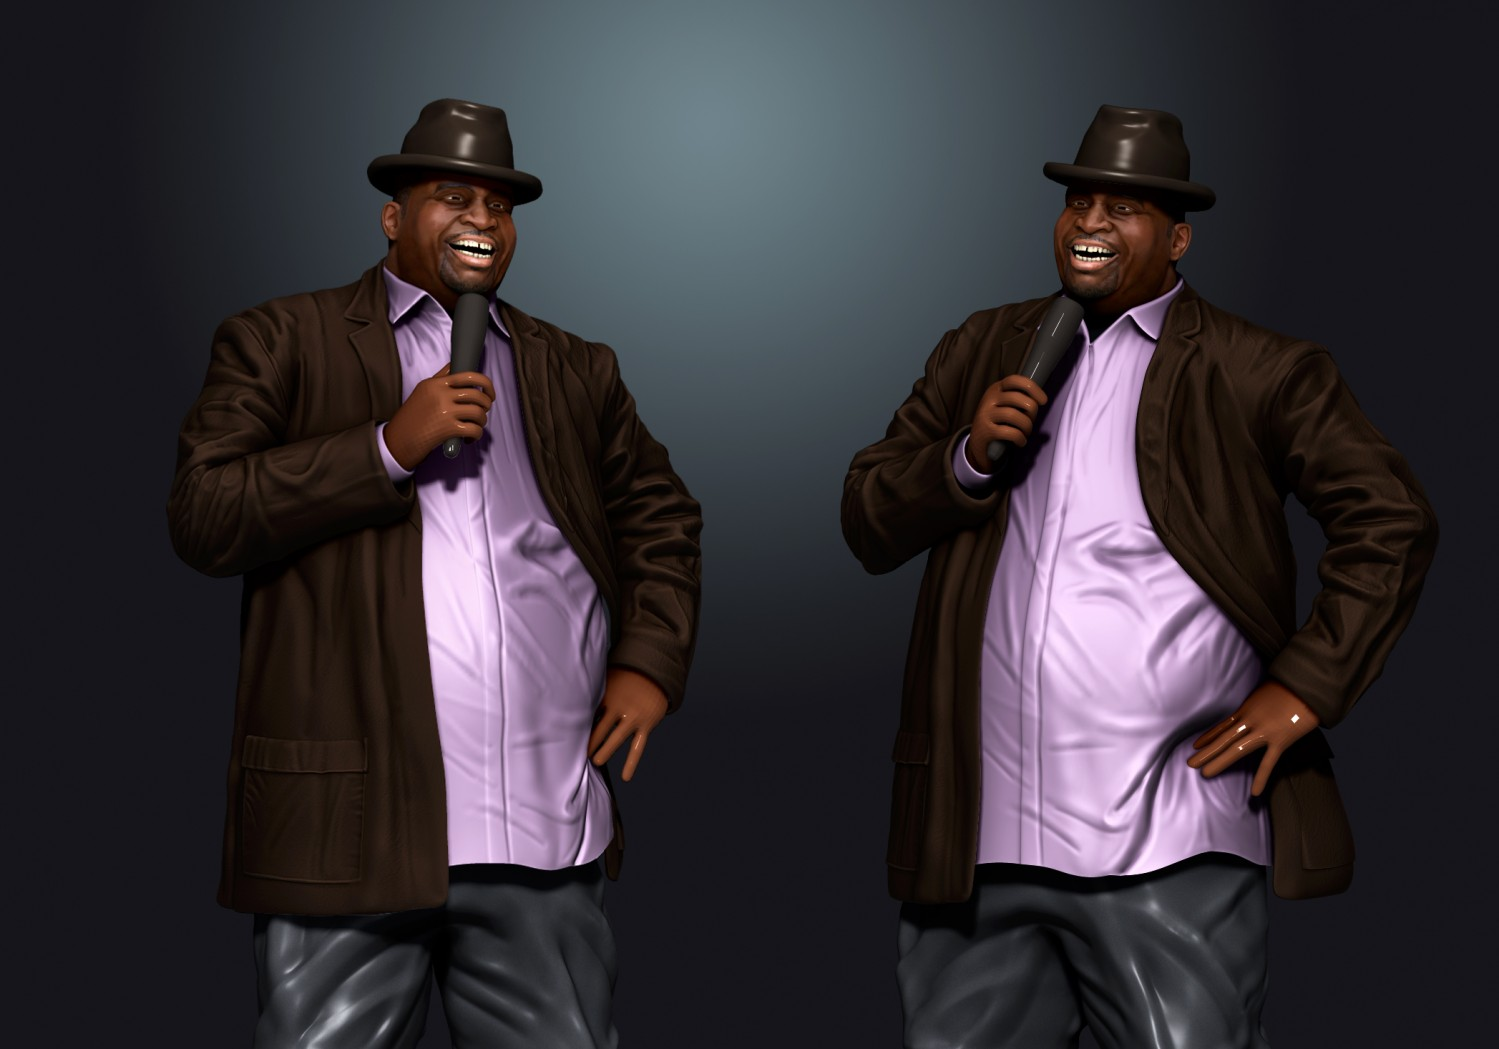 patrice o 39 neal tribute wip. Black Bedroom Furniture Sets. Home Design Ideas